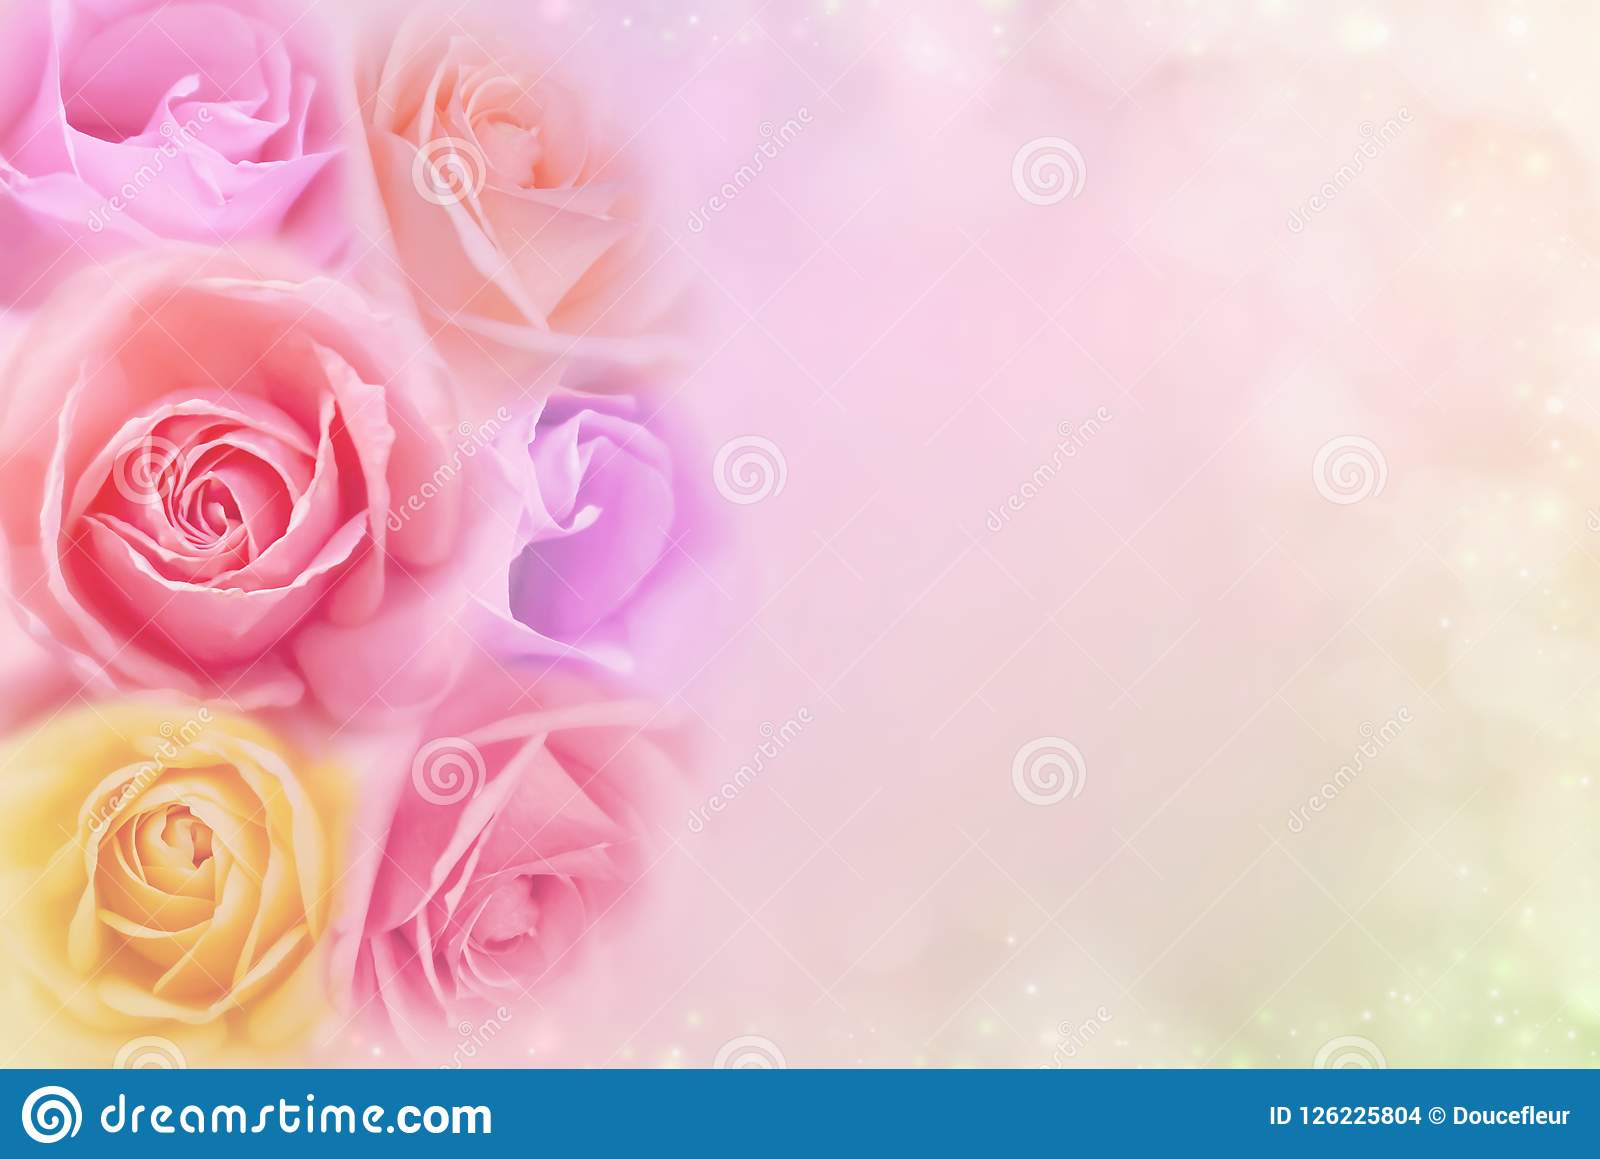 Beautiful roses flower in soft color filters, background for valentine or wedding card